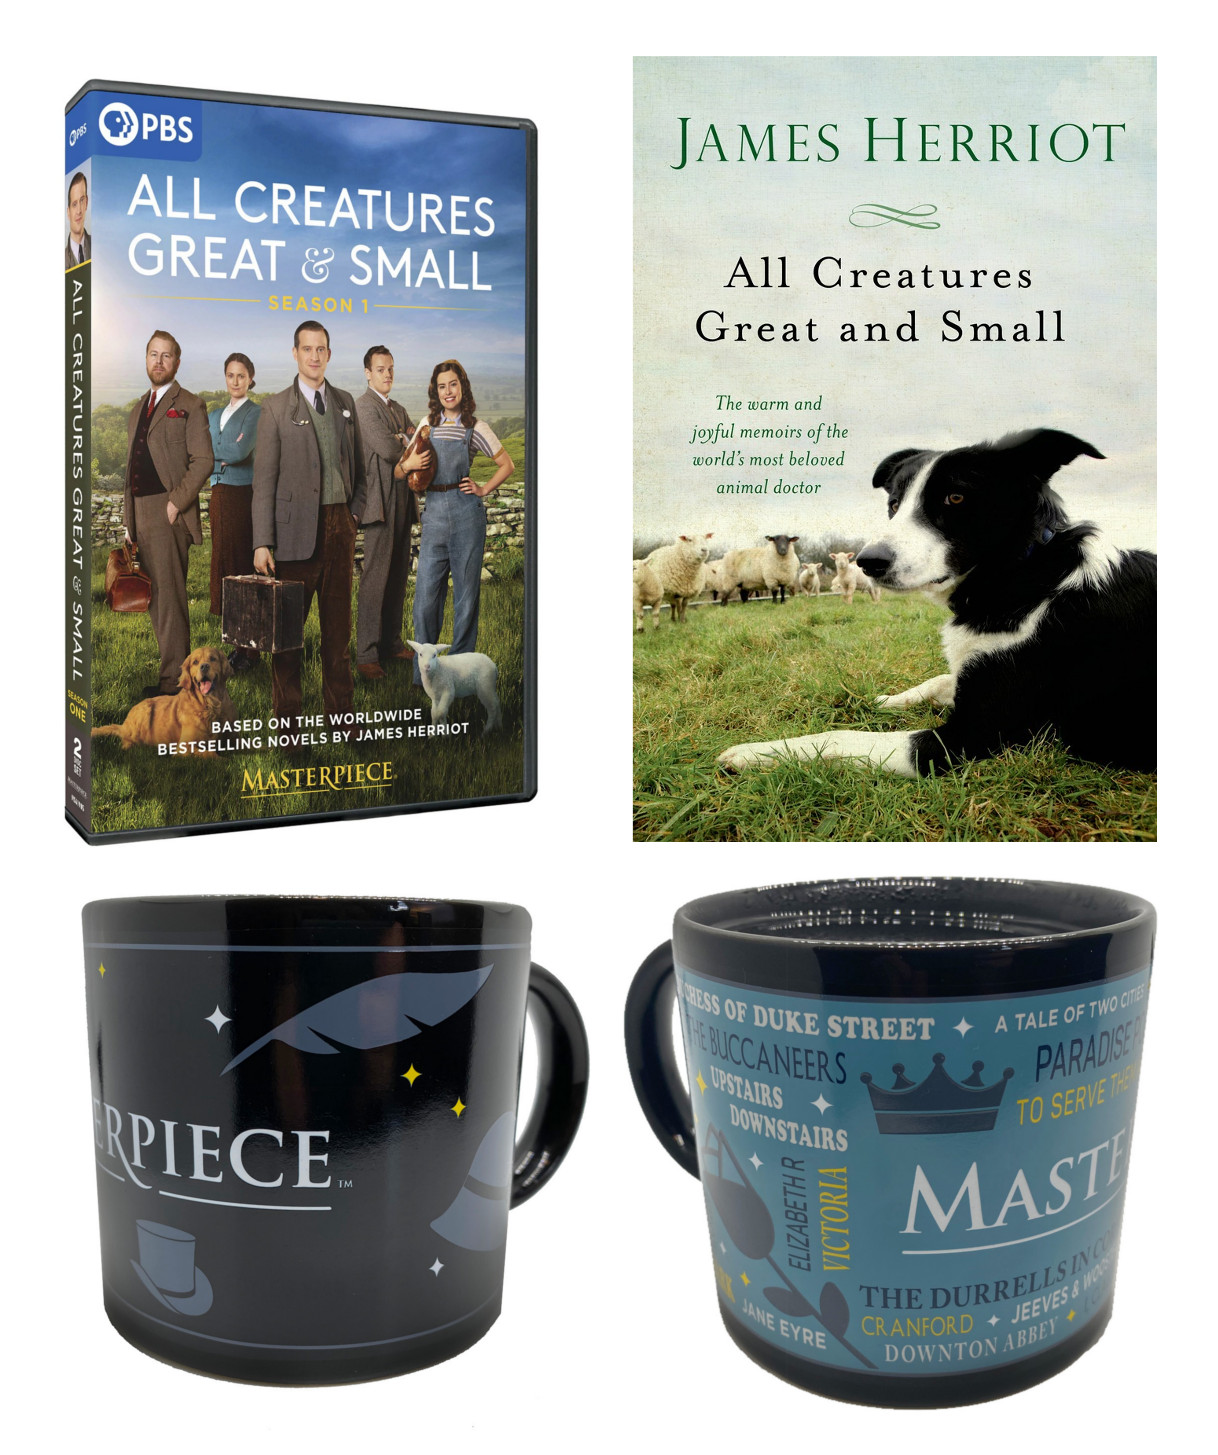 All Creatures Great and Small Combo (DVD,Book,Mug)